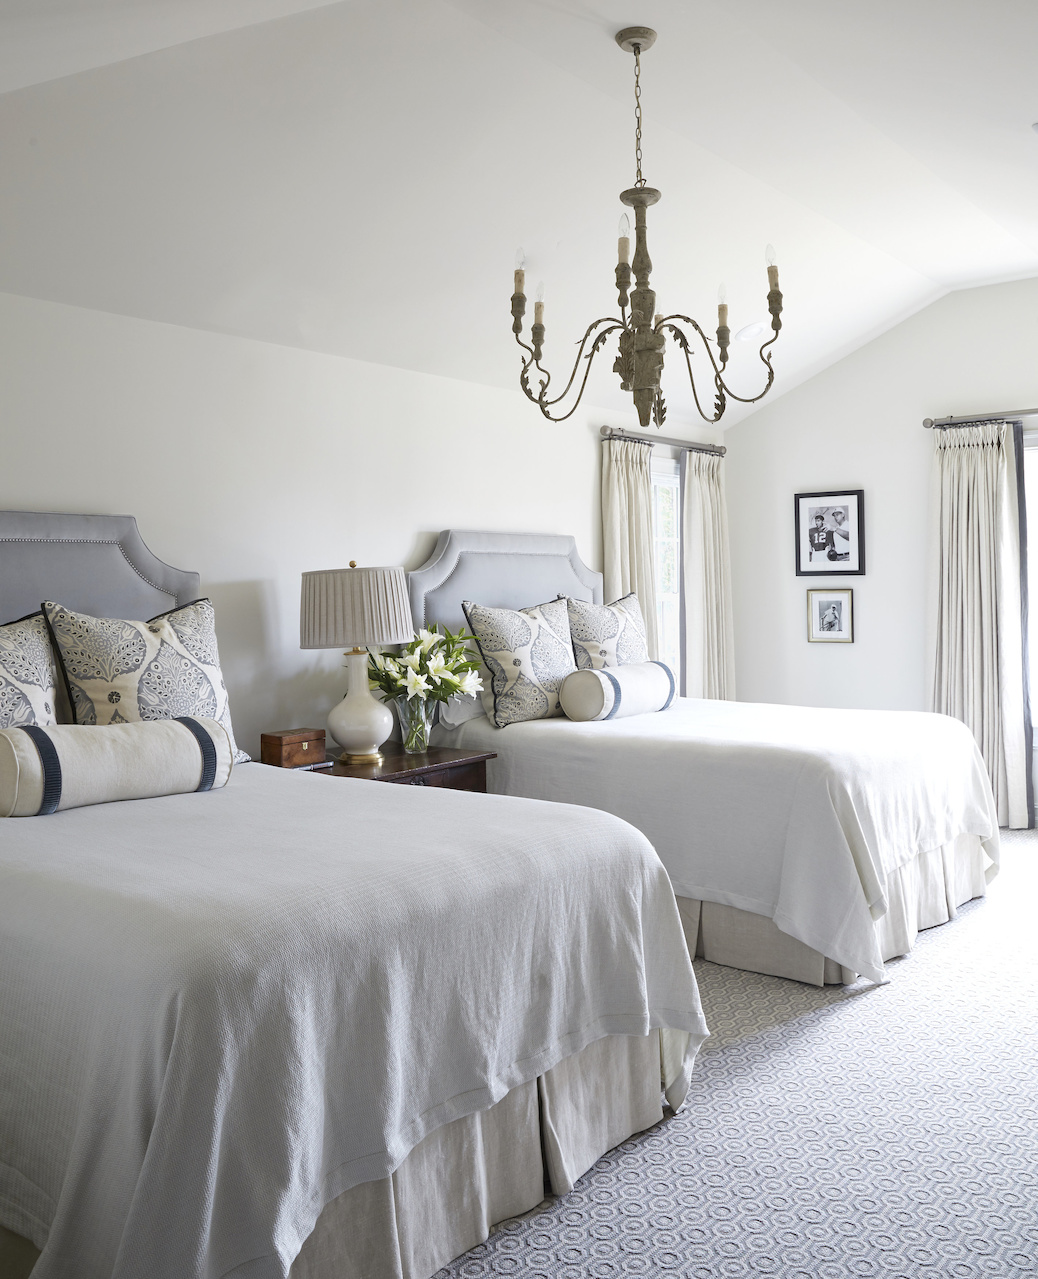 With its soft, velvet upholstered headboards and hand-painted euro shams, this guest bedroom provides ample sleeping for this home away from home. Libby found vintage press photos of Coach Bear Bryant and other historical images that add personality and local flavor throughout the home.